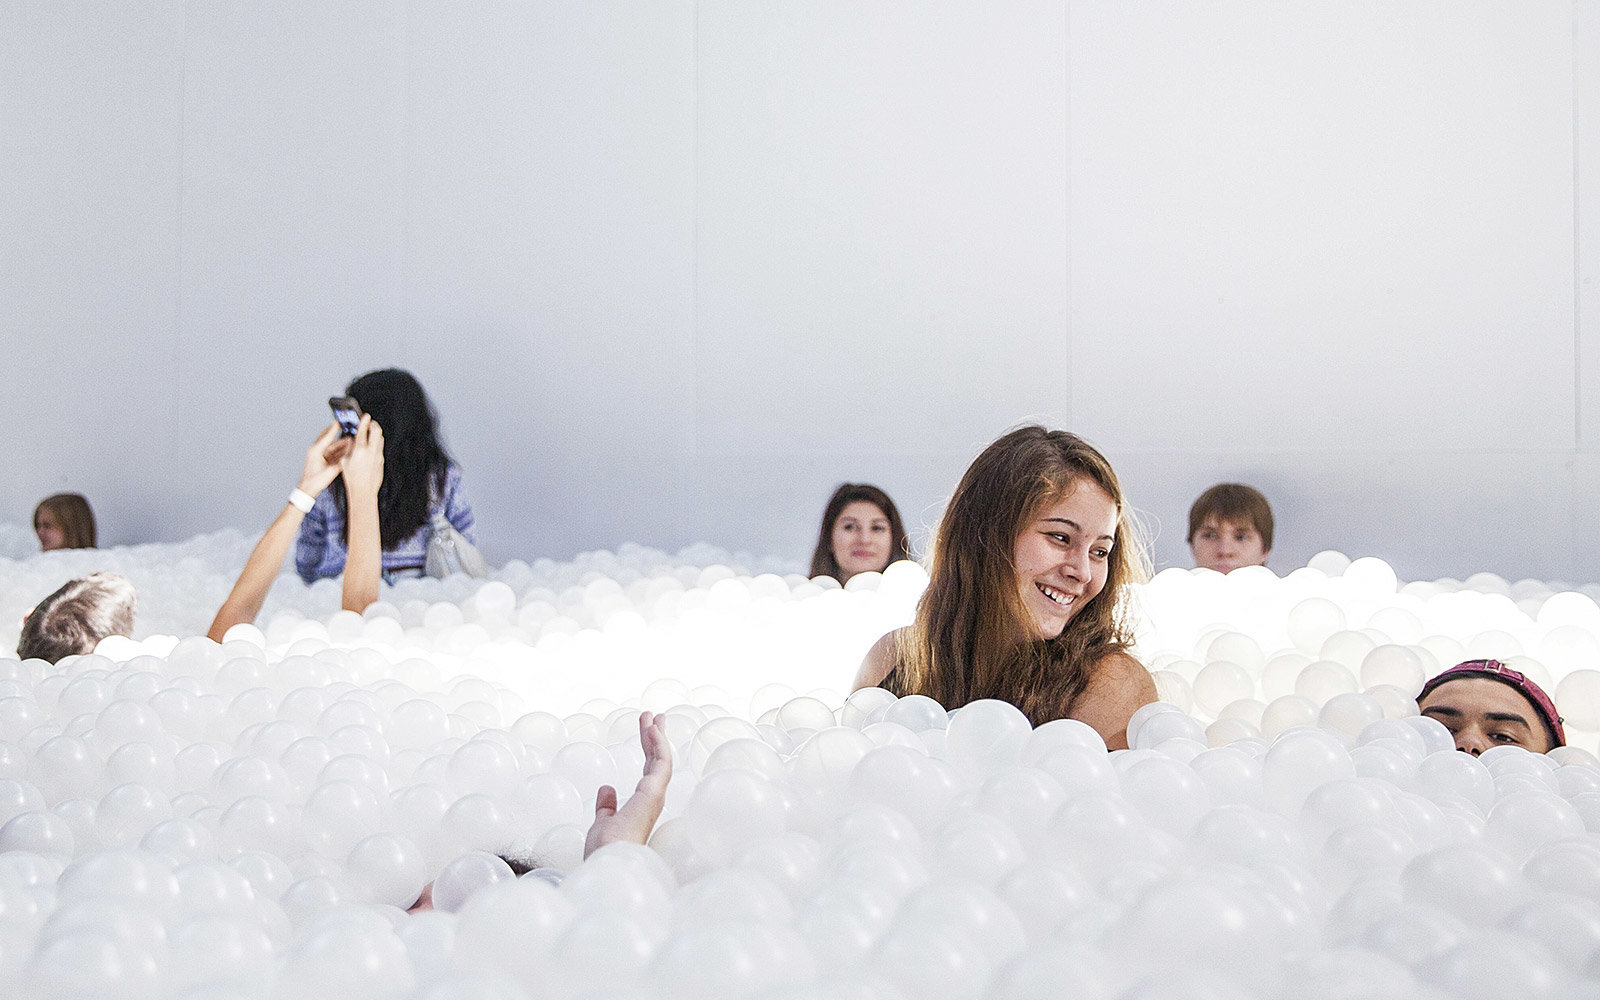 Ball Pit Exhibition